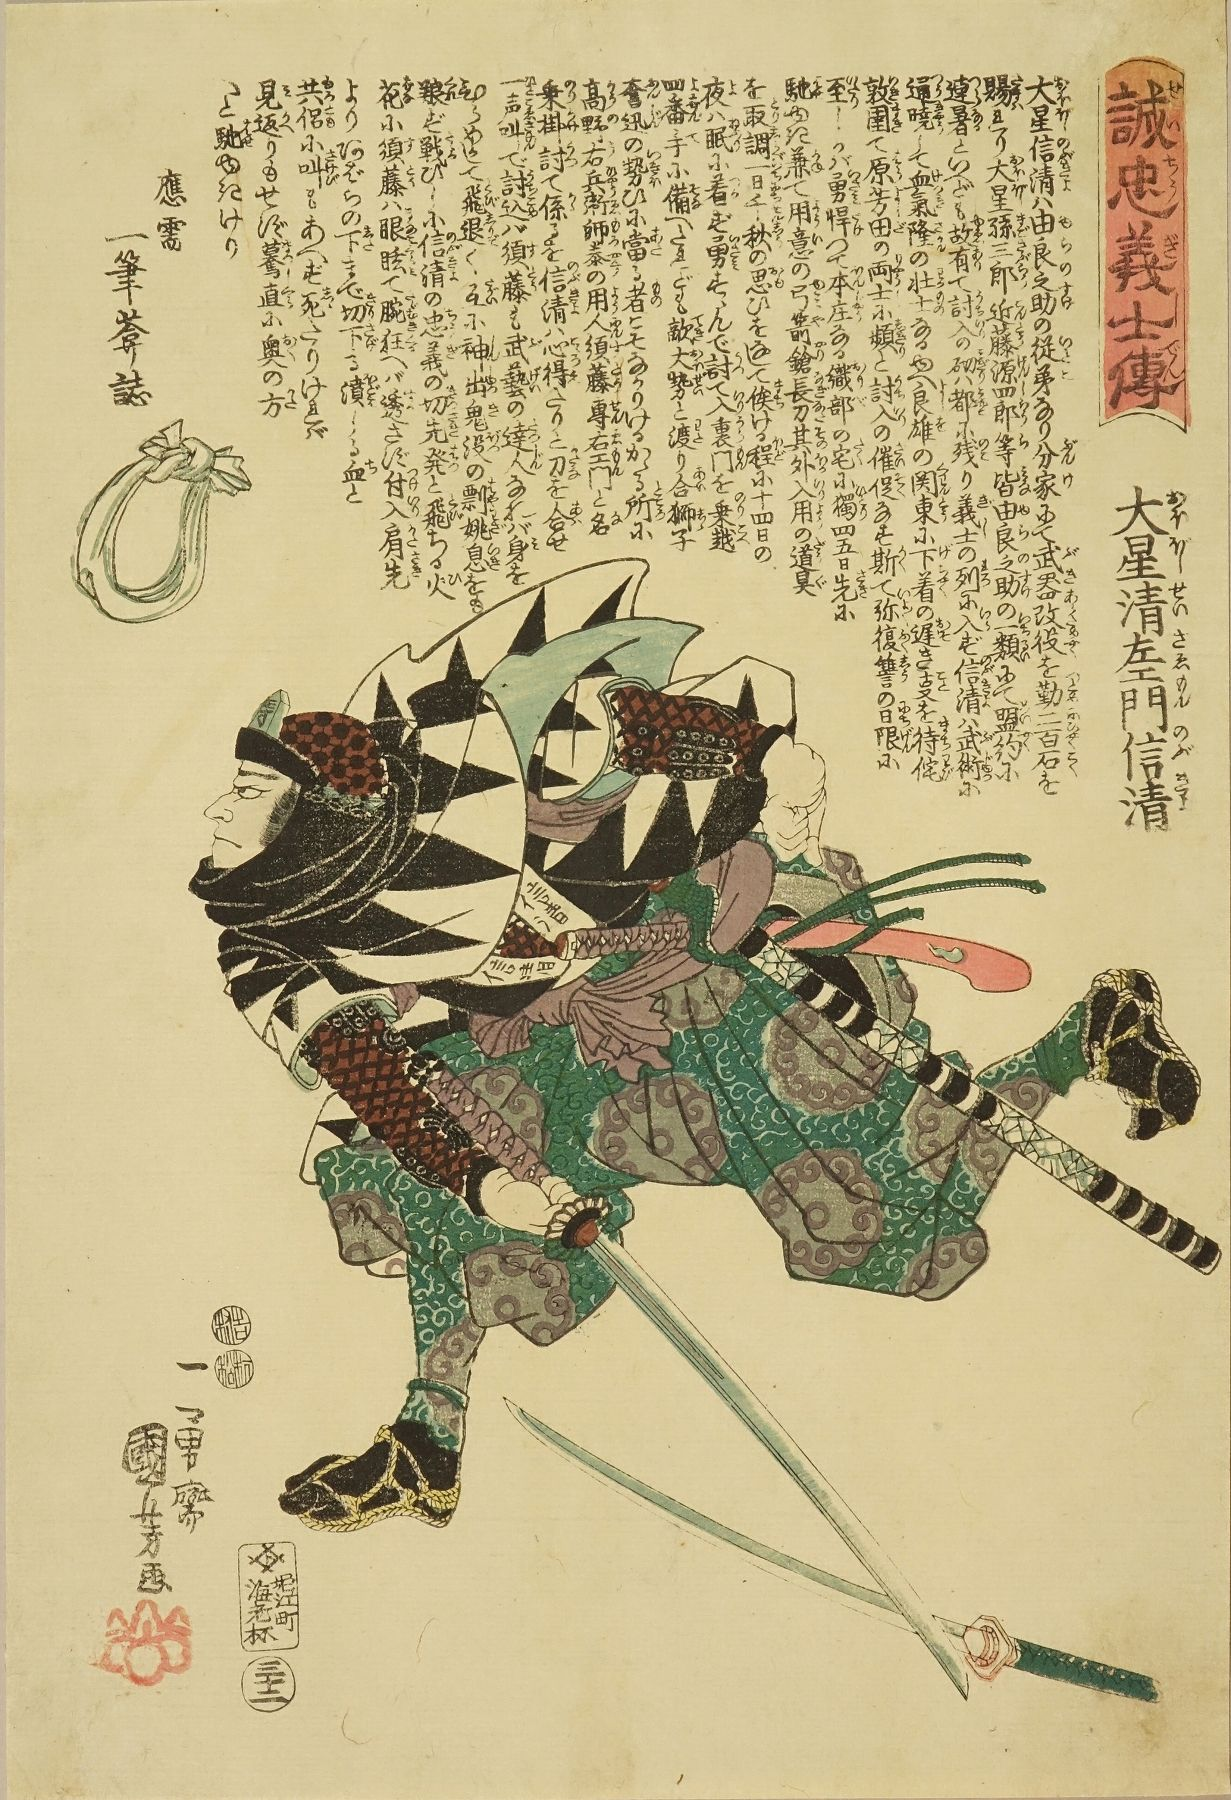 KUNIYOSHI Oboshi Seizaemon Nobukiyo (Oishi Sekizaemon Nobukiyo), from <i>Seichu gishiden</i> (Stories of the true loyalty of the faithful samurai)